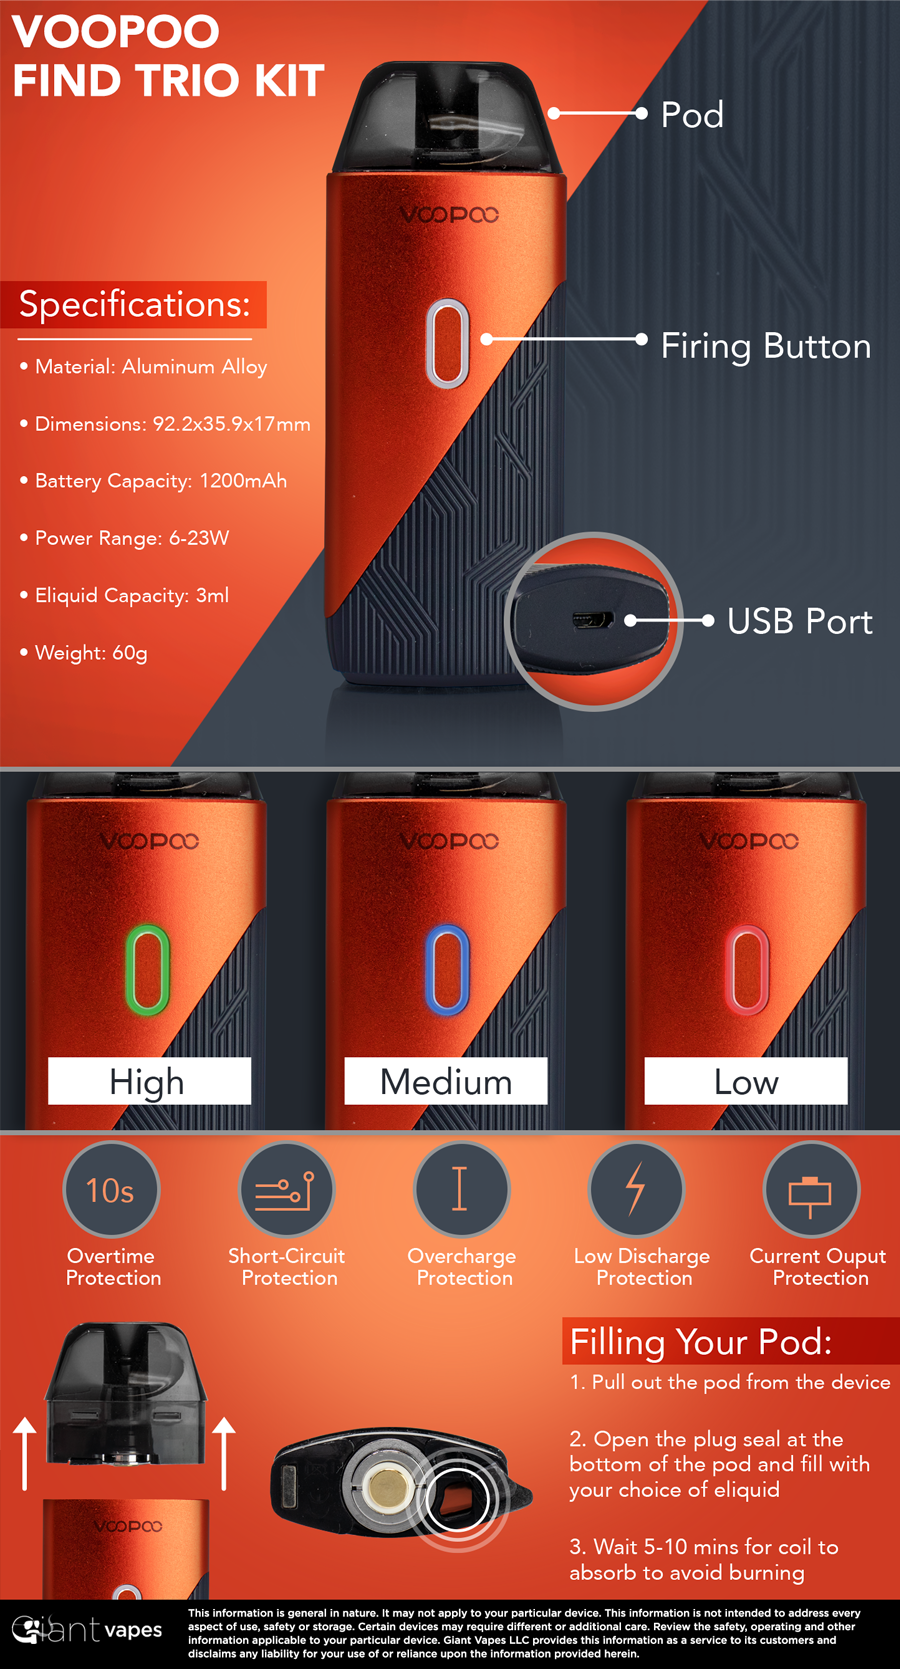 VOOPOO FIND Trio Kit Infographic